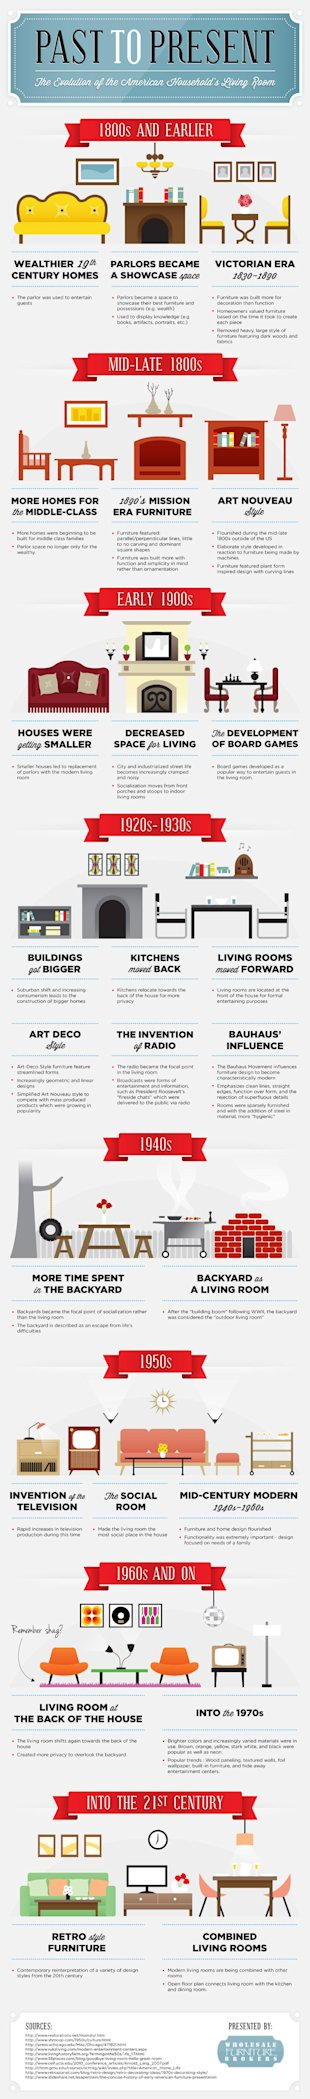 The Evolution of The American Households Living Room [Infographic] image the evolution of the american households living room